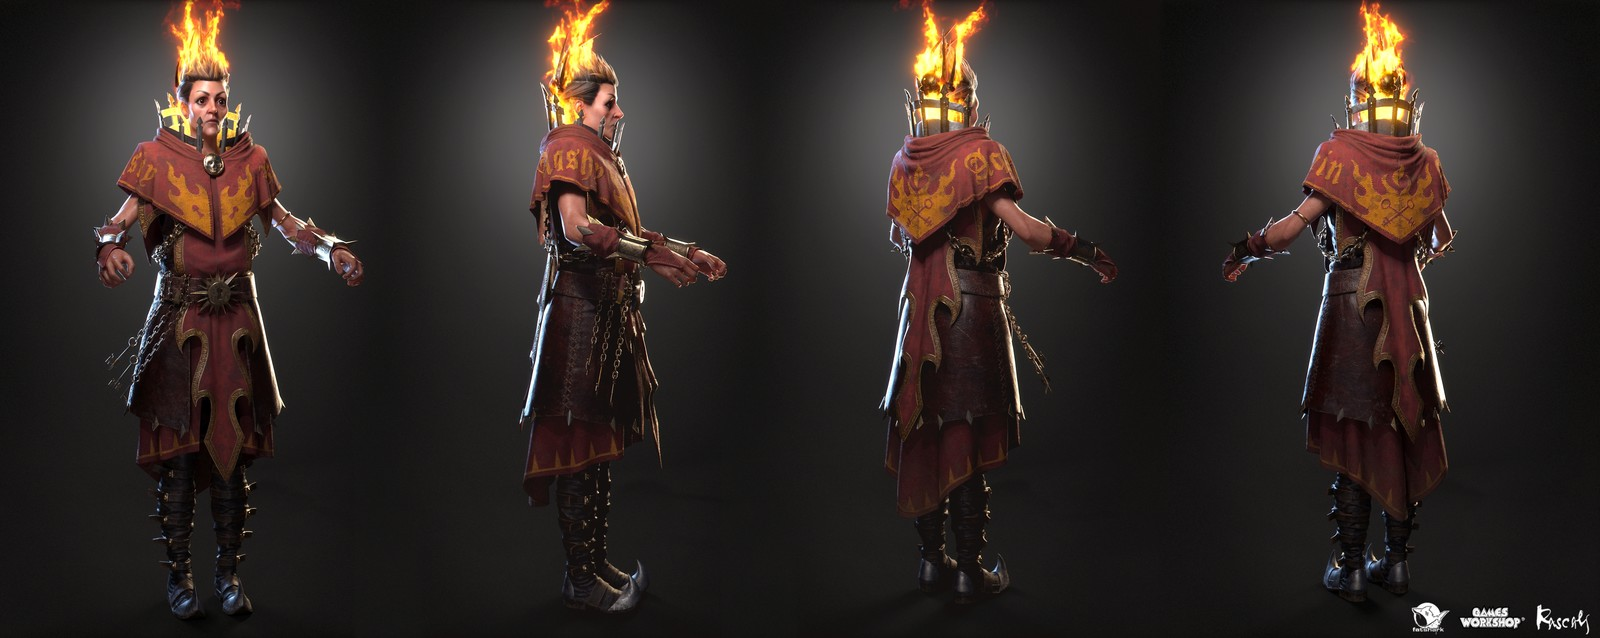 Sienna is one of the playable hero variants Rascals made for Warhammer: Vermintide II, Fatshark's award-winning co-op meelee action published by Games Workshop.